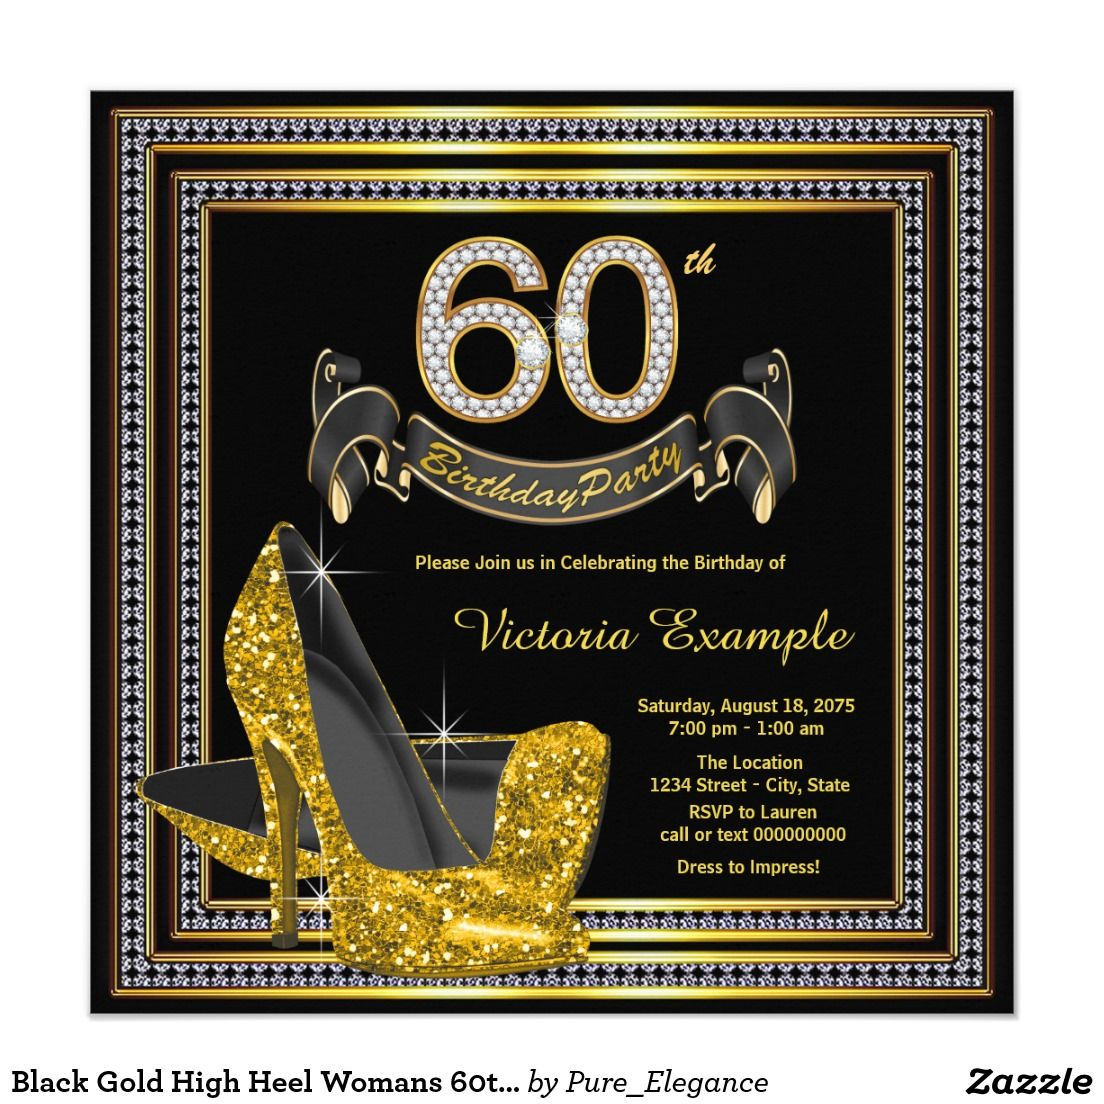 Black Gold High Heel Womans 60th Birthday Party Card   Party ...